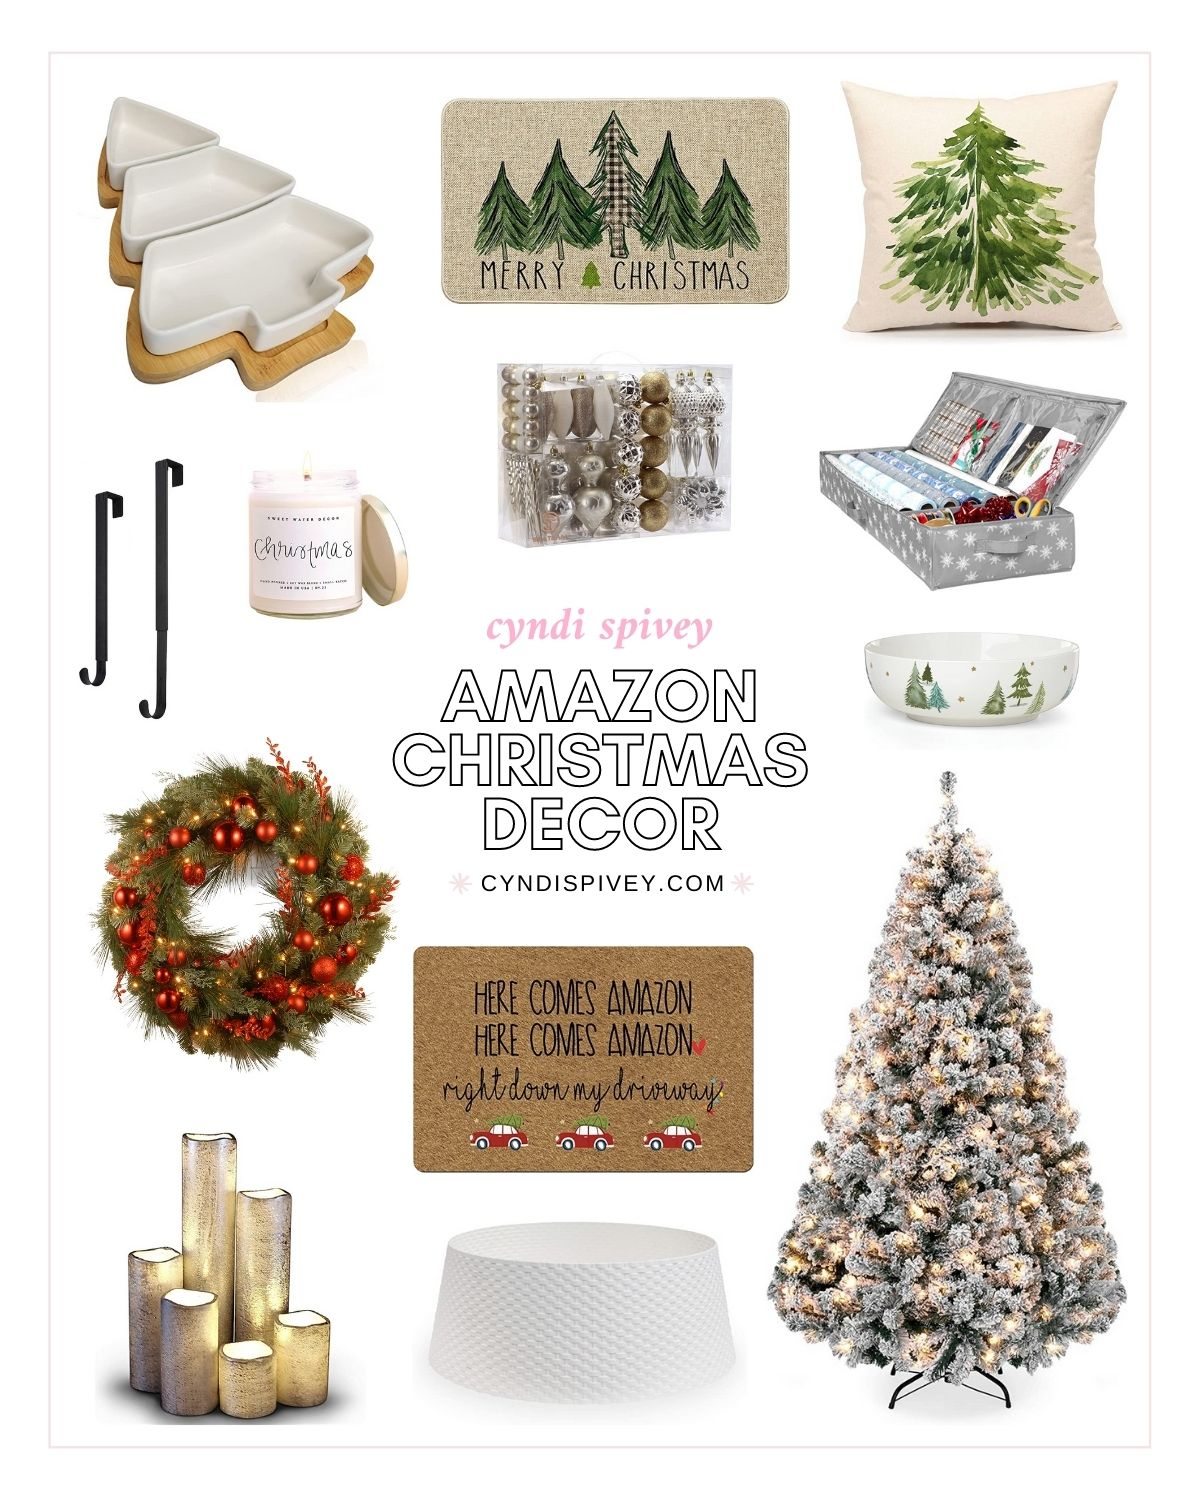 Christmas Decor from Amazon You'll Love